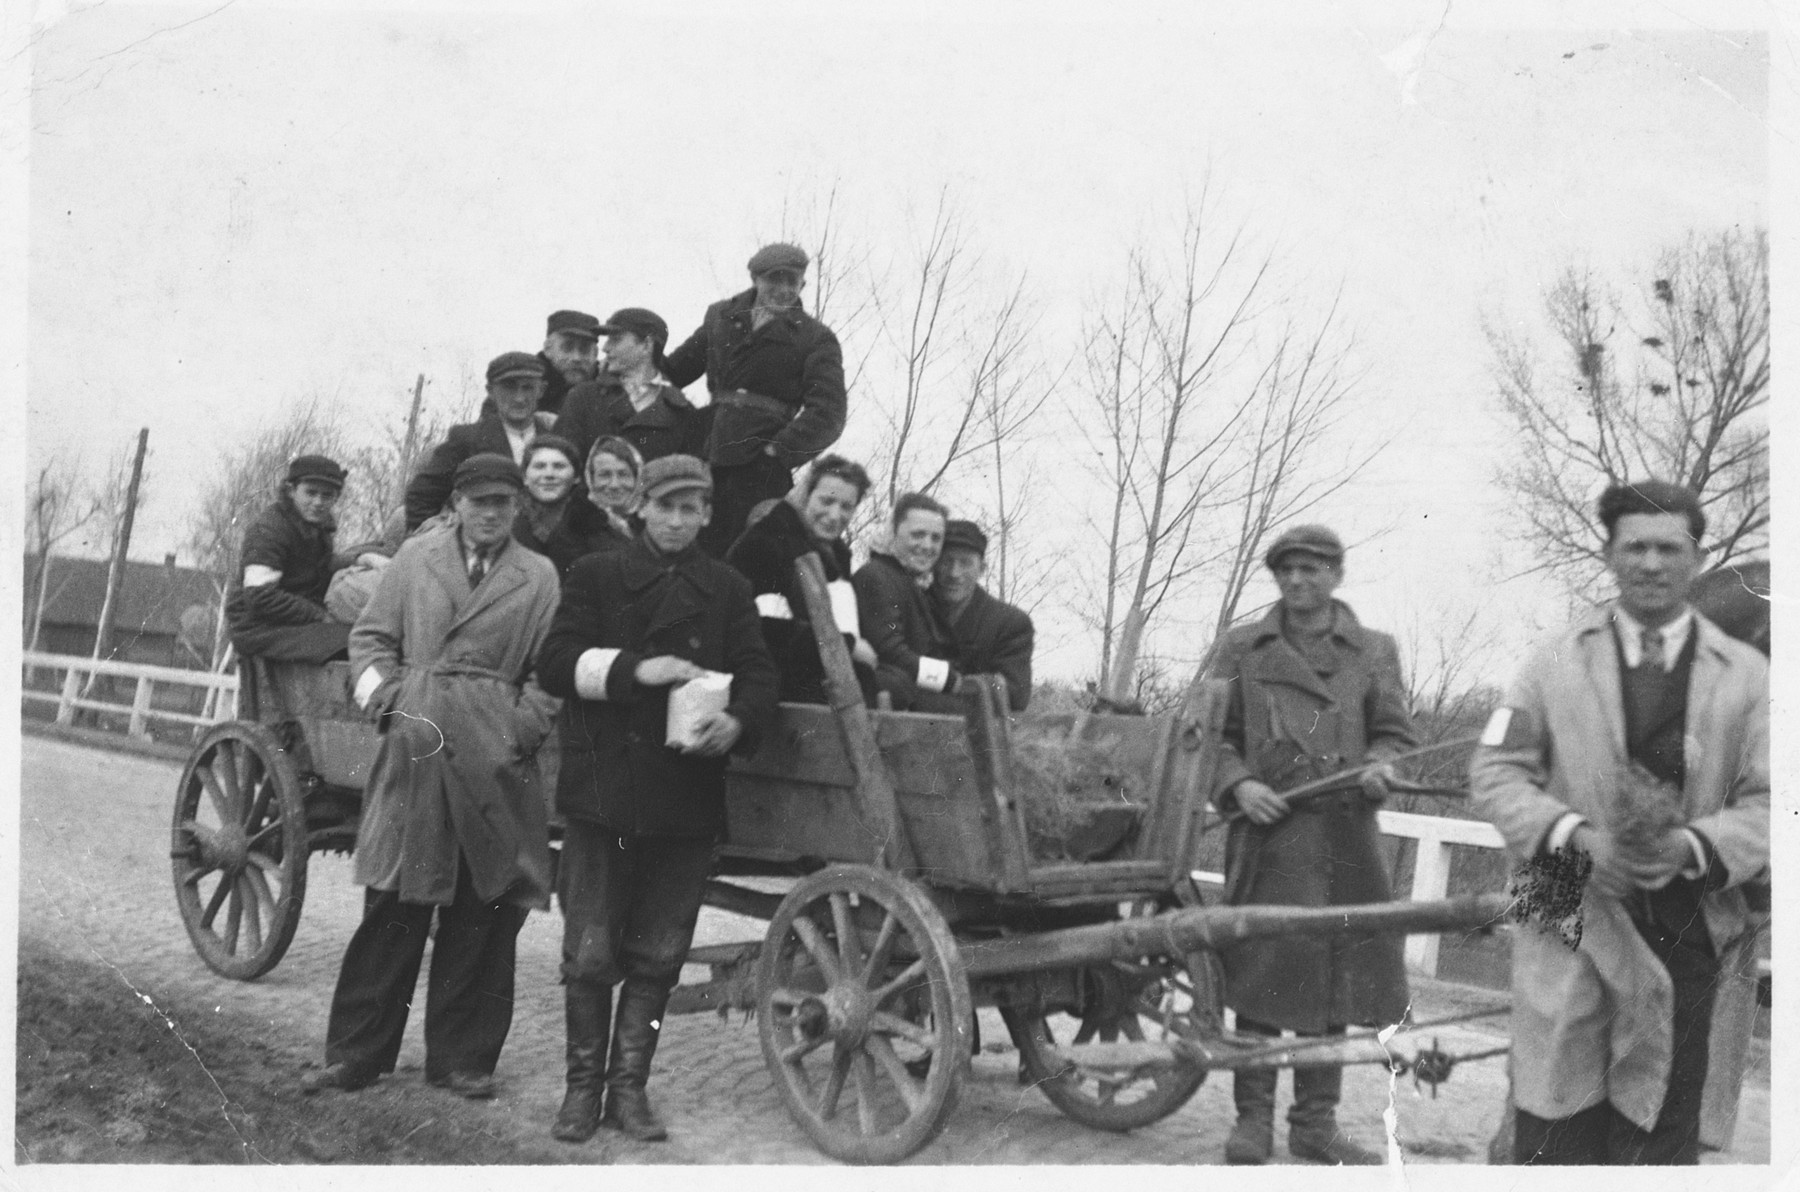 A group of Jewish friends wearing armbands poses on and around a hay wagon near Radom shortly after the German invasion of Poland.